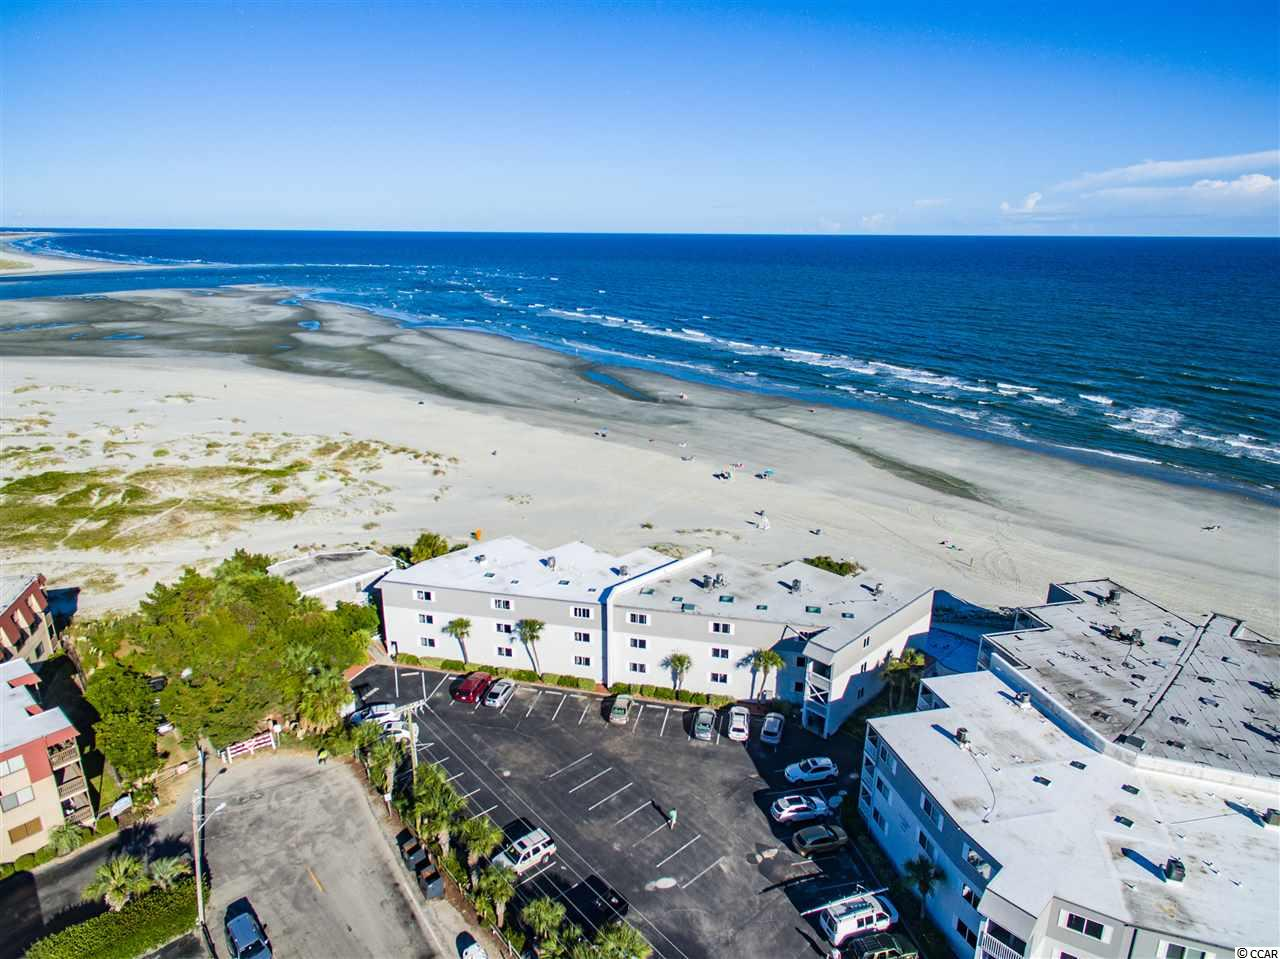 Ocean View Villas in Cherry Grove!  Very rare opportunity. This 2br/2b condo is located at the point in Cherry Grove and has unobstructed view of the ocean, inlet and Waities Island.  Views found nowhere else in the Grand Strand.  The condo features laminate floors, updated kitchen and bathrooms and is being sold fully furnished. The complex features a private gated parking area and an oceanfront pool.  This section of the beach has wide beaches, access to the inlet for fishing, kayaking, and crabbing.  Don't wait till this is a missed opportunity!